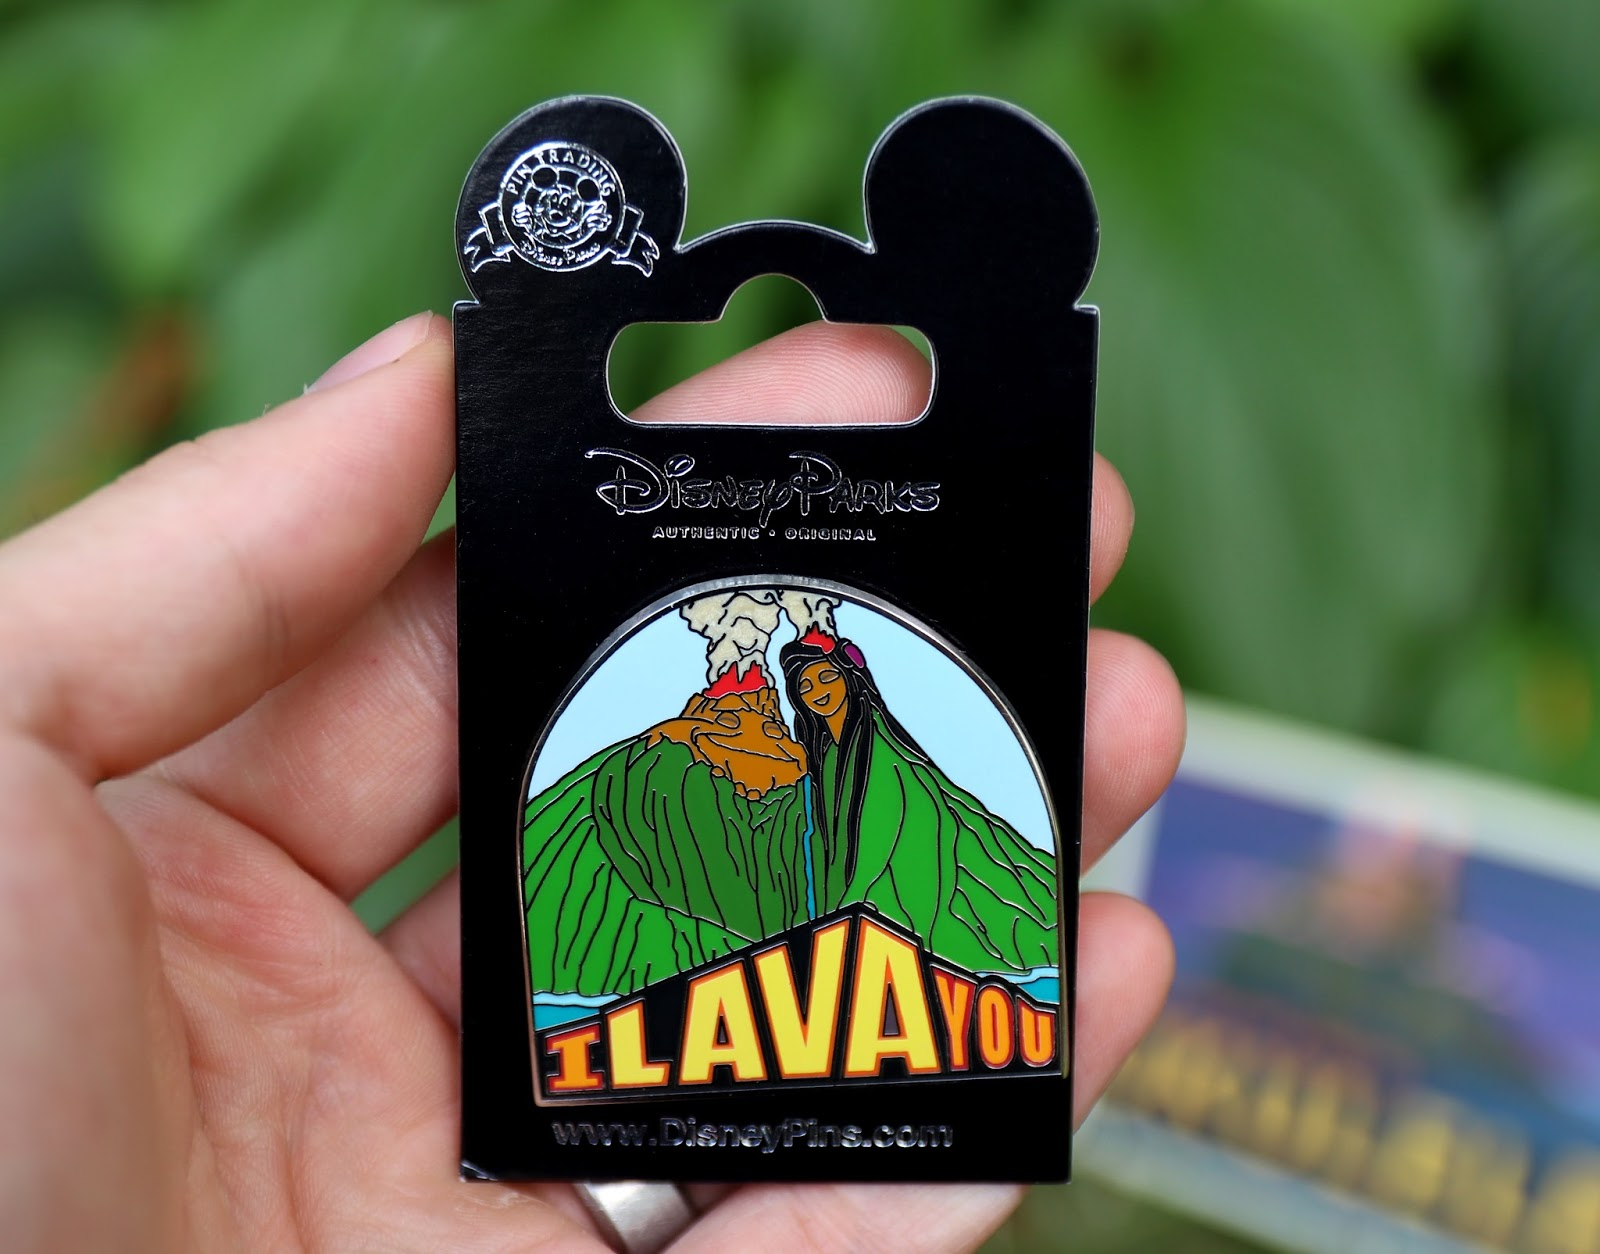 disney parks pixar I Lava You pin